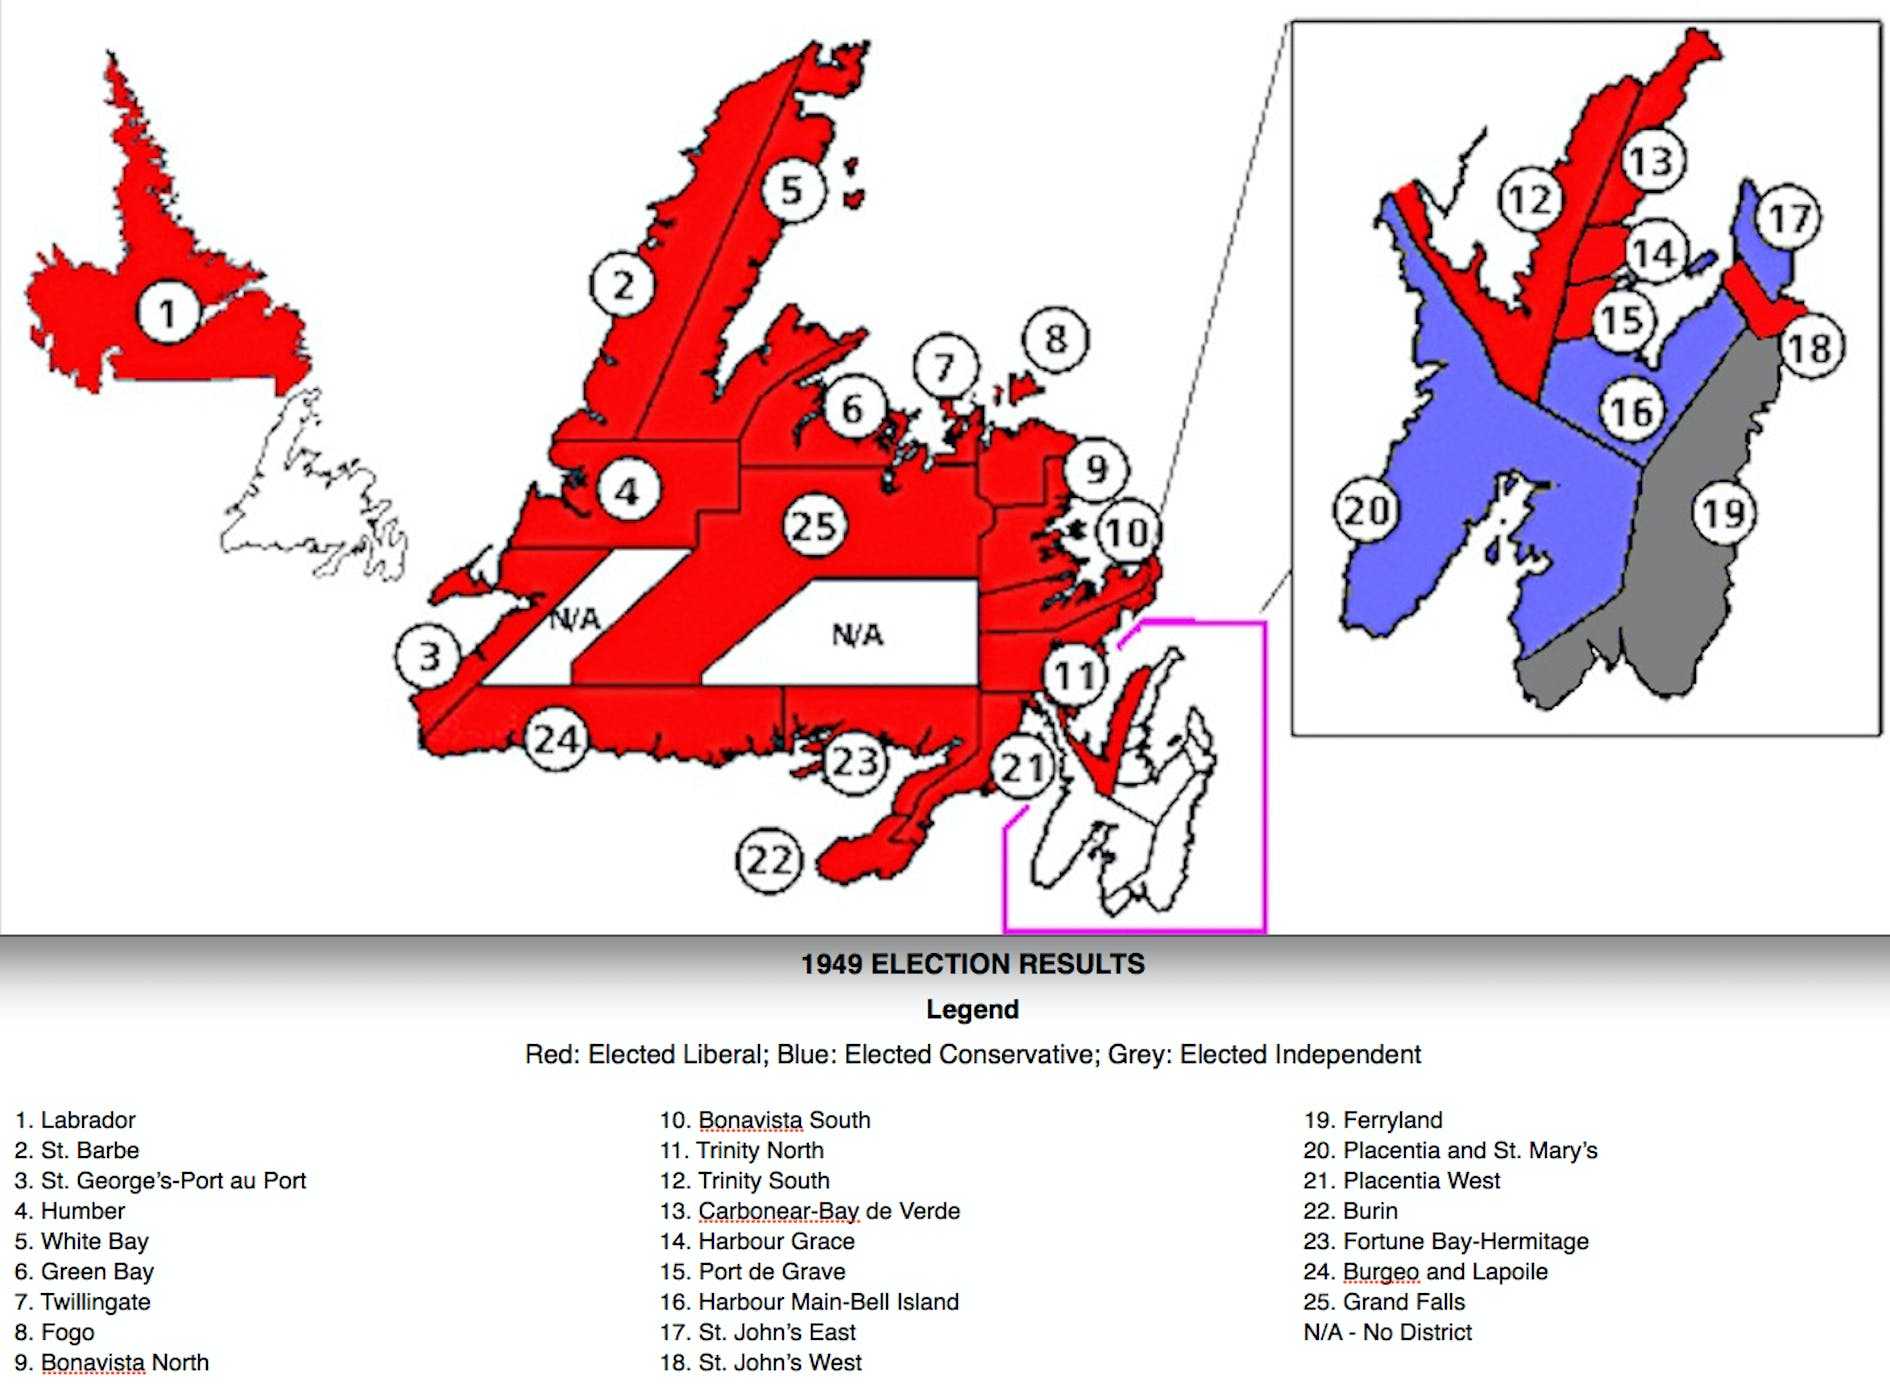 A map showing the 25 electoral districts and results from the 1949 Newfoundland election, the first in the province's history. This map is based on one first produced by the Newfoundland Heritage website to show the results of the 1948 referendum on confederation with Canada. All the district names for the 1949 election were the same as in the referendum and as in the 1932 election that was the last for Newfoundland as a self-governing dominion nation. The 25 districts produced 28 MHAs — the two St. John's ridings, as well as Harbour Main-Bell Island, each elected two representatives.